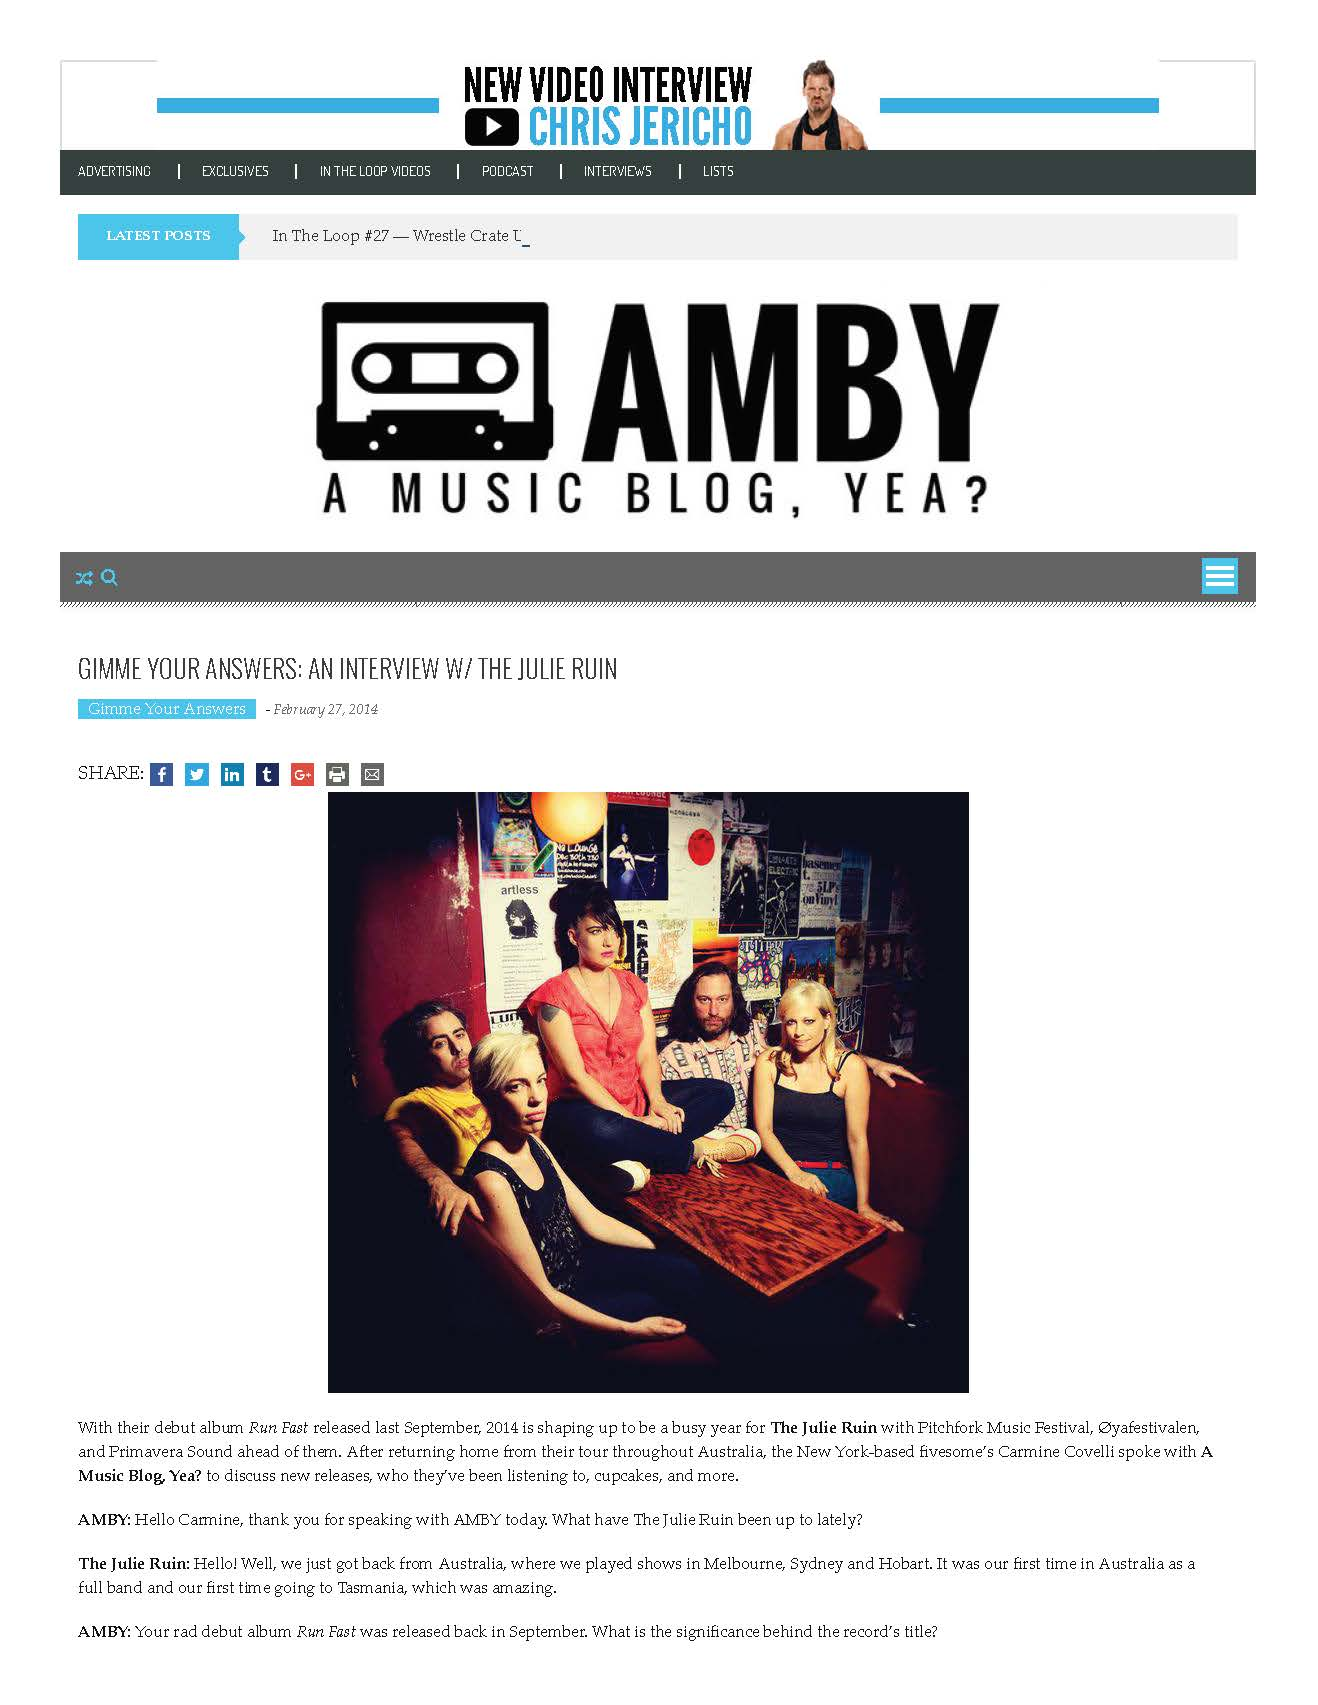 Gimme Your Answers- An Interview w- The Julie Ruin – A Music Blog, Yea?_Page_1.jpg